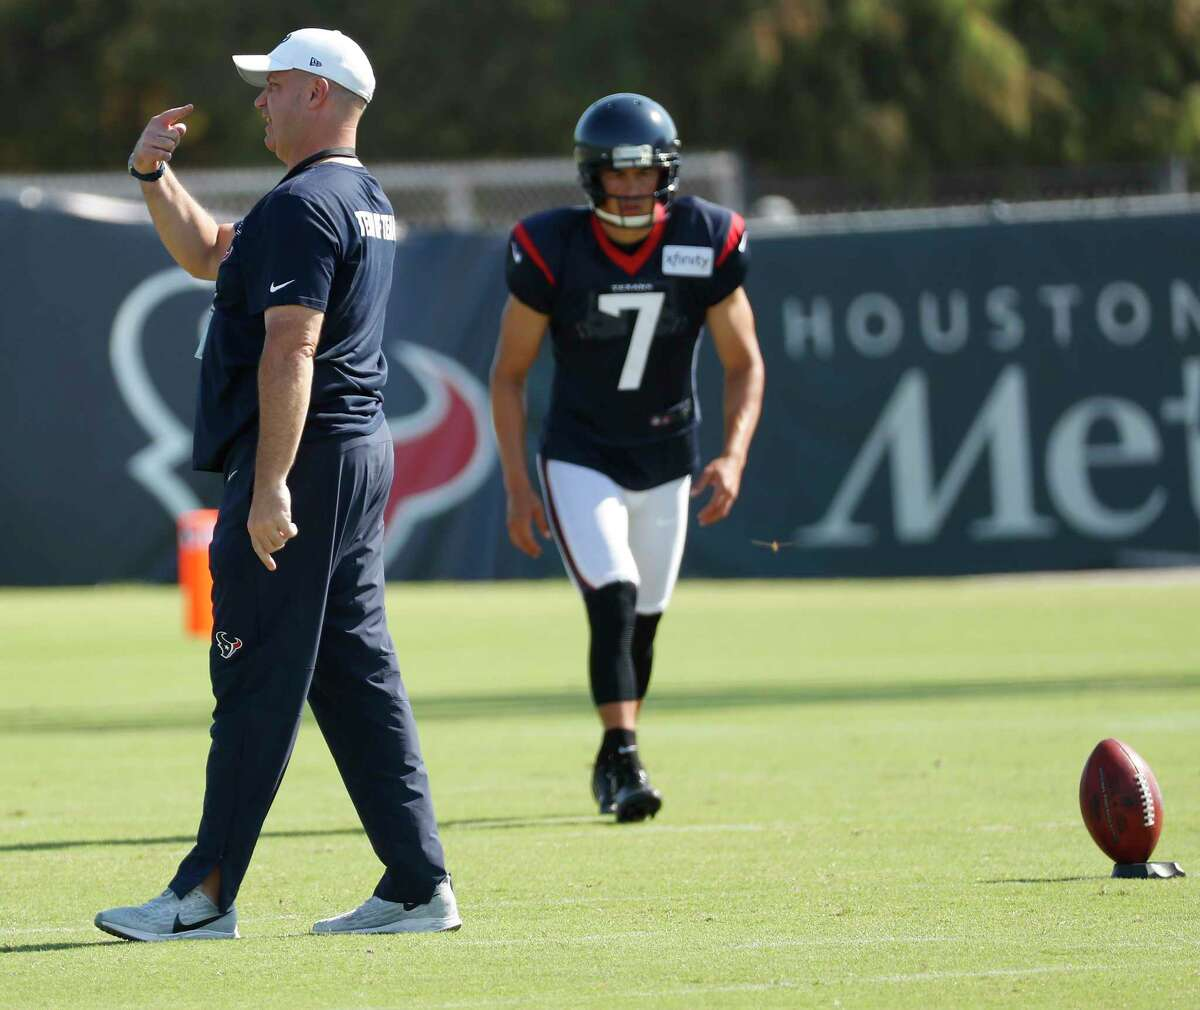 Houston Texans head coach Bill O'Brien watches his team work out during an NFL training camp football practice Thursday, Aug. 20, 2020, in Houston.